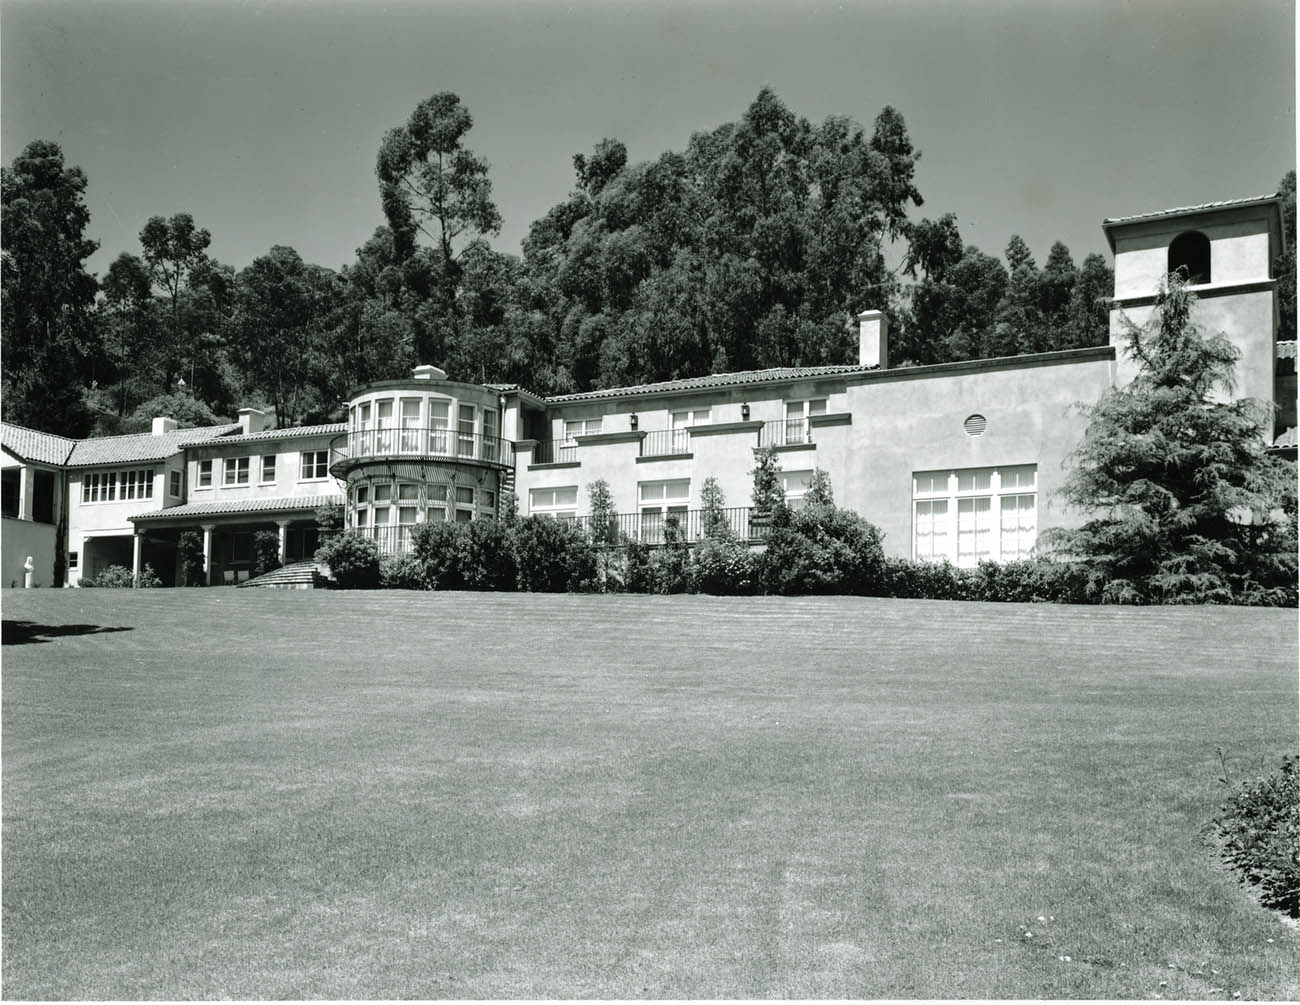 Exterior view of Getty Ranch House Museum, Malibu, about 1957.